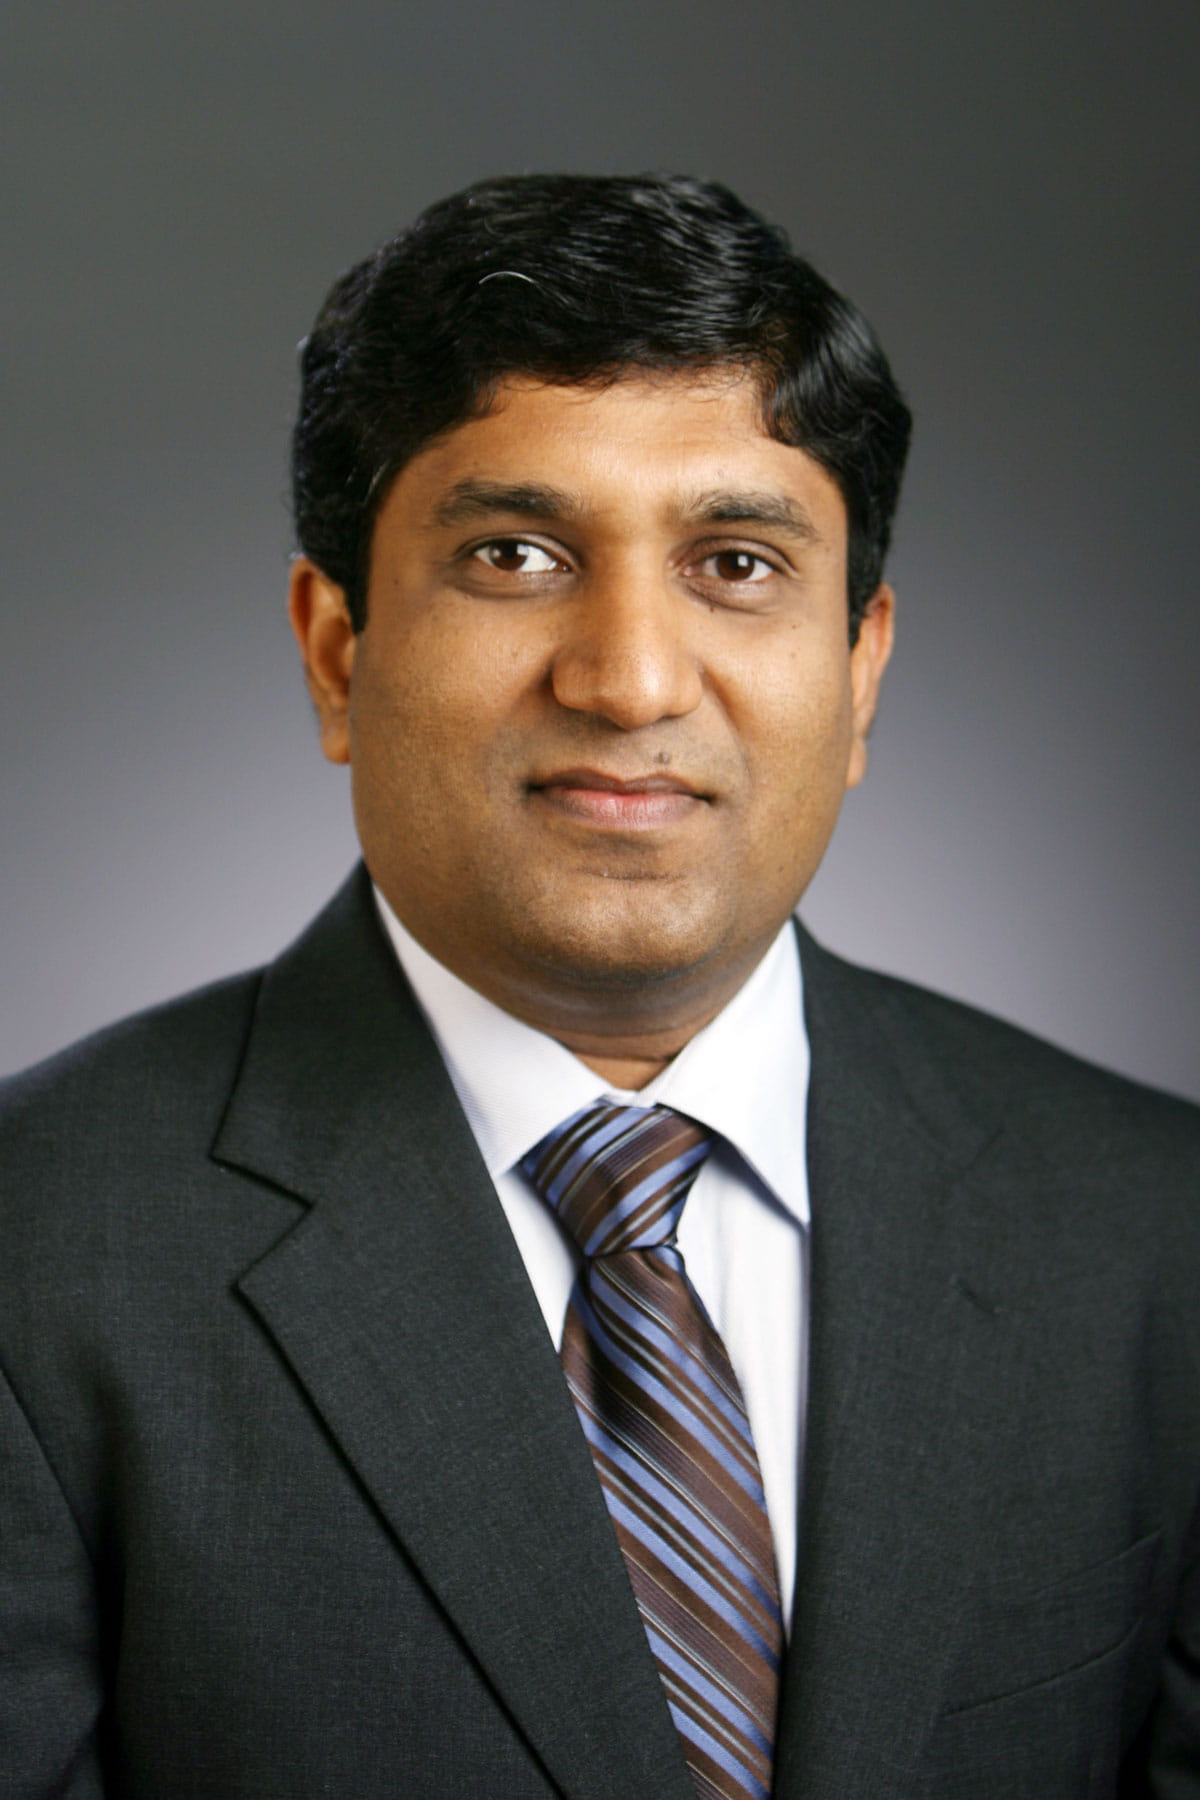 A photo of Pranavkumar Shivakumar.